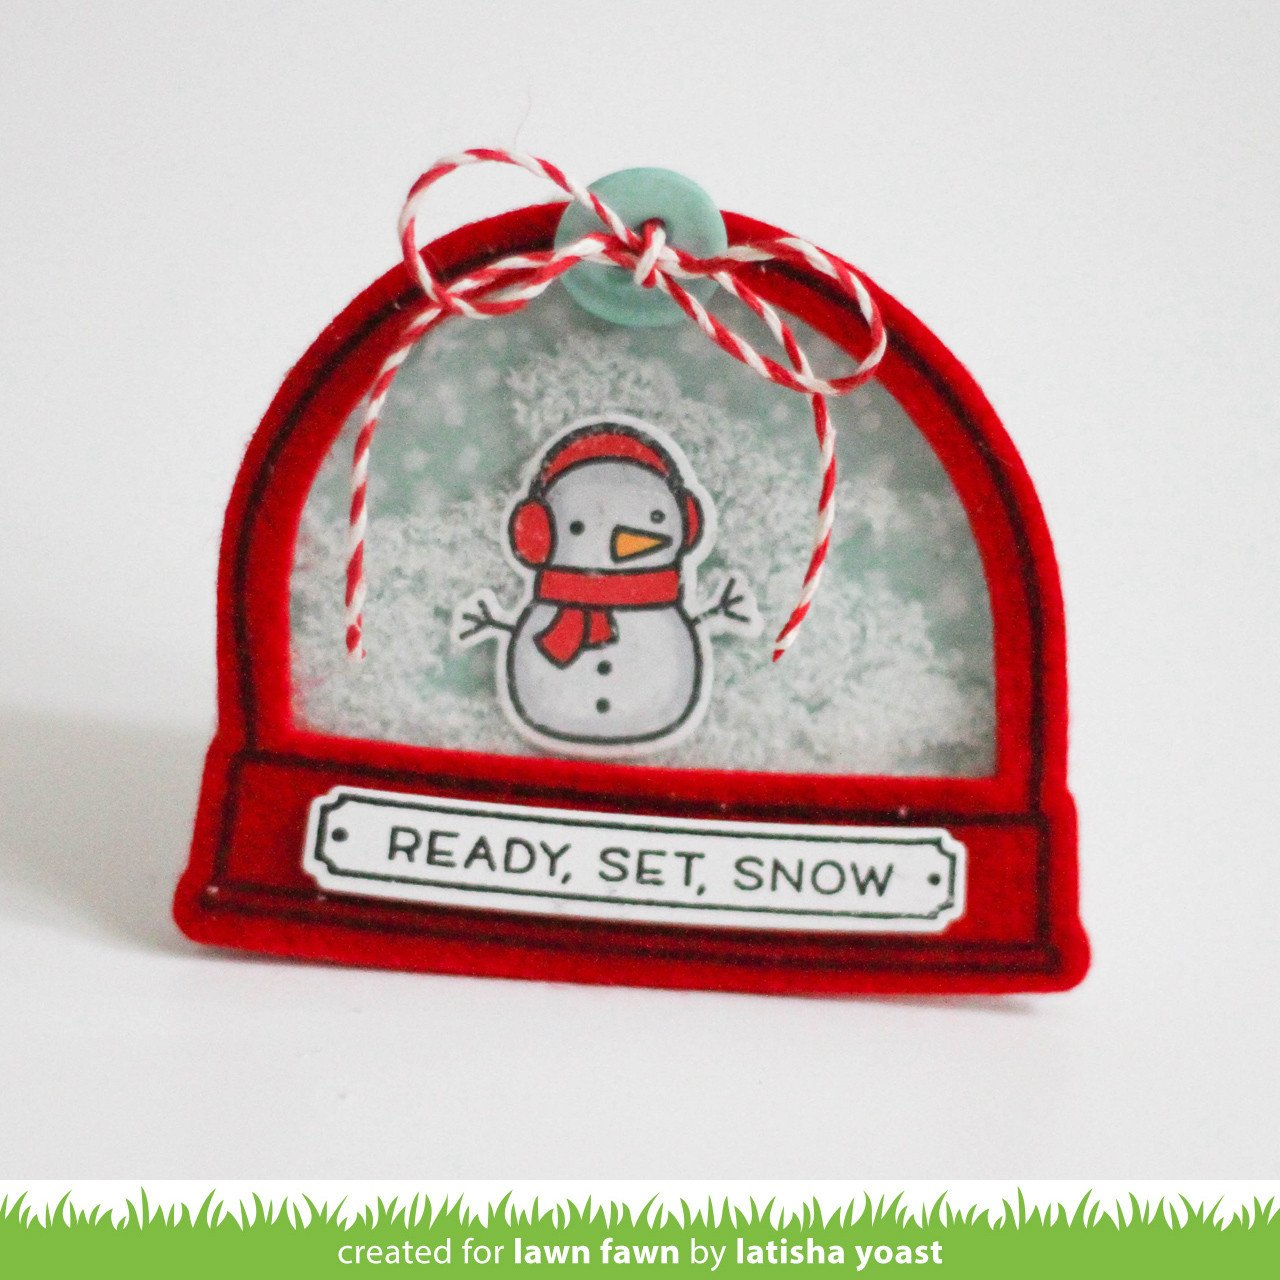 ready, set, snow shaker add-on